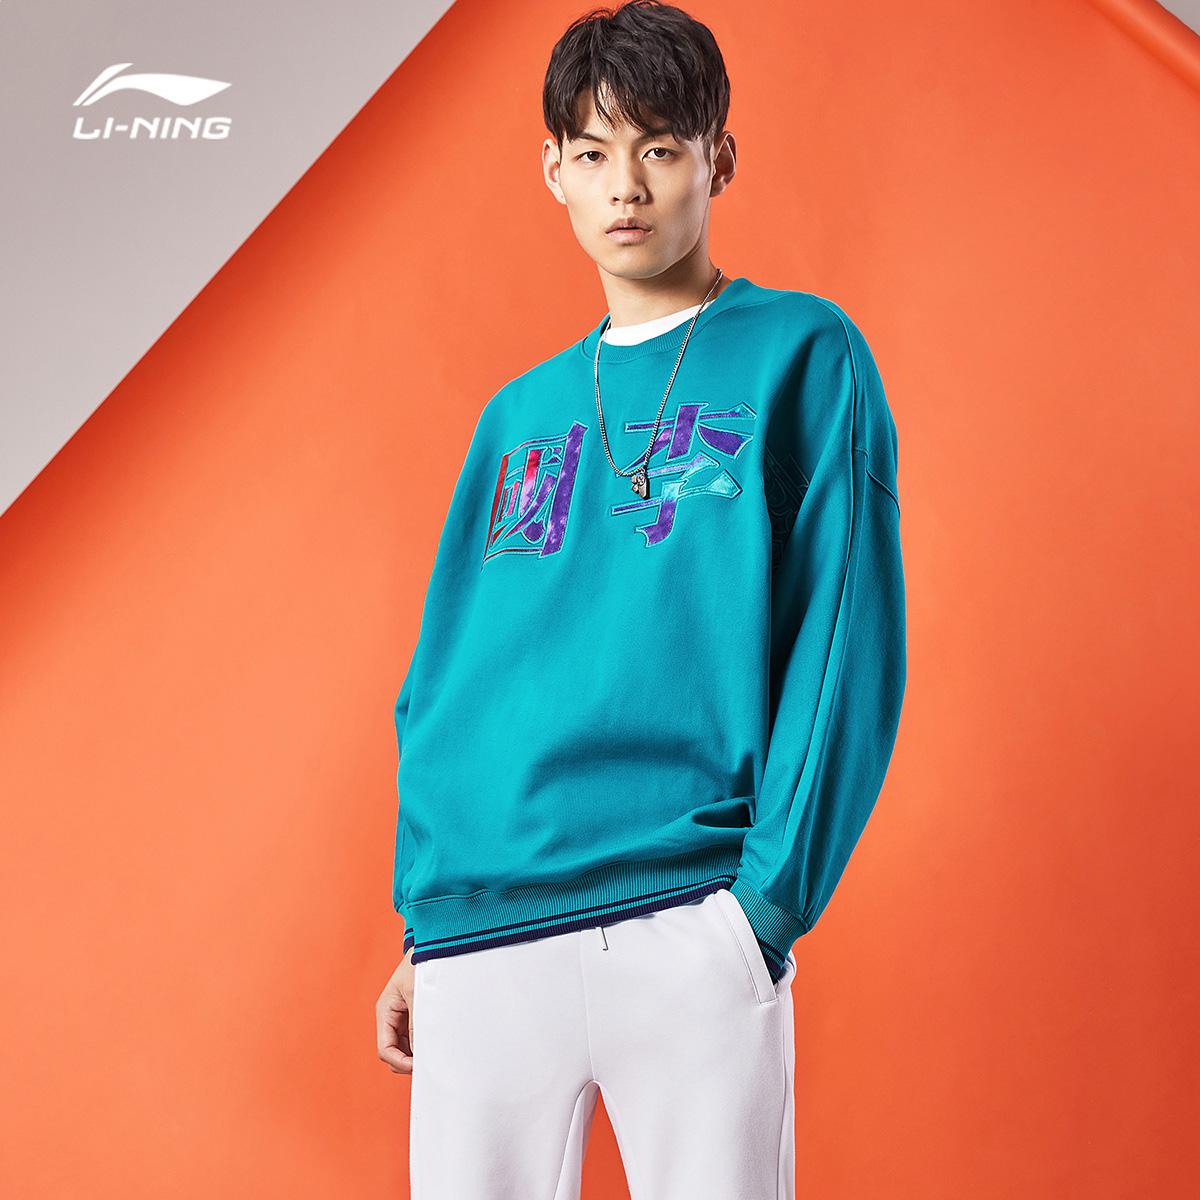 China Li Ning Paris Fashion Zhou Autumn and Winter Series Sweater Official Genuine Men's loose casual sportswear